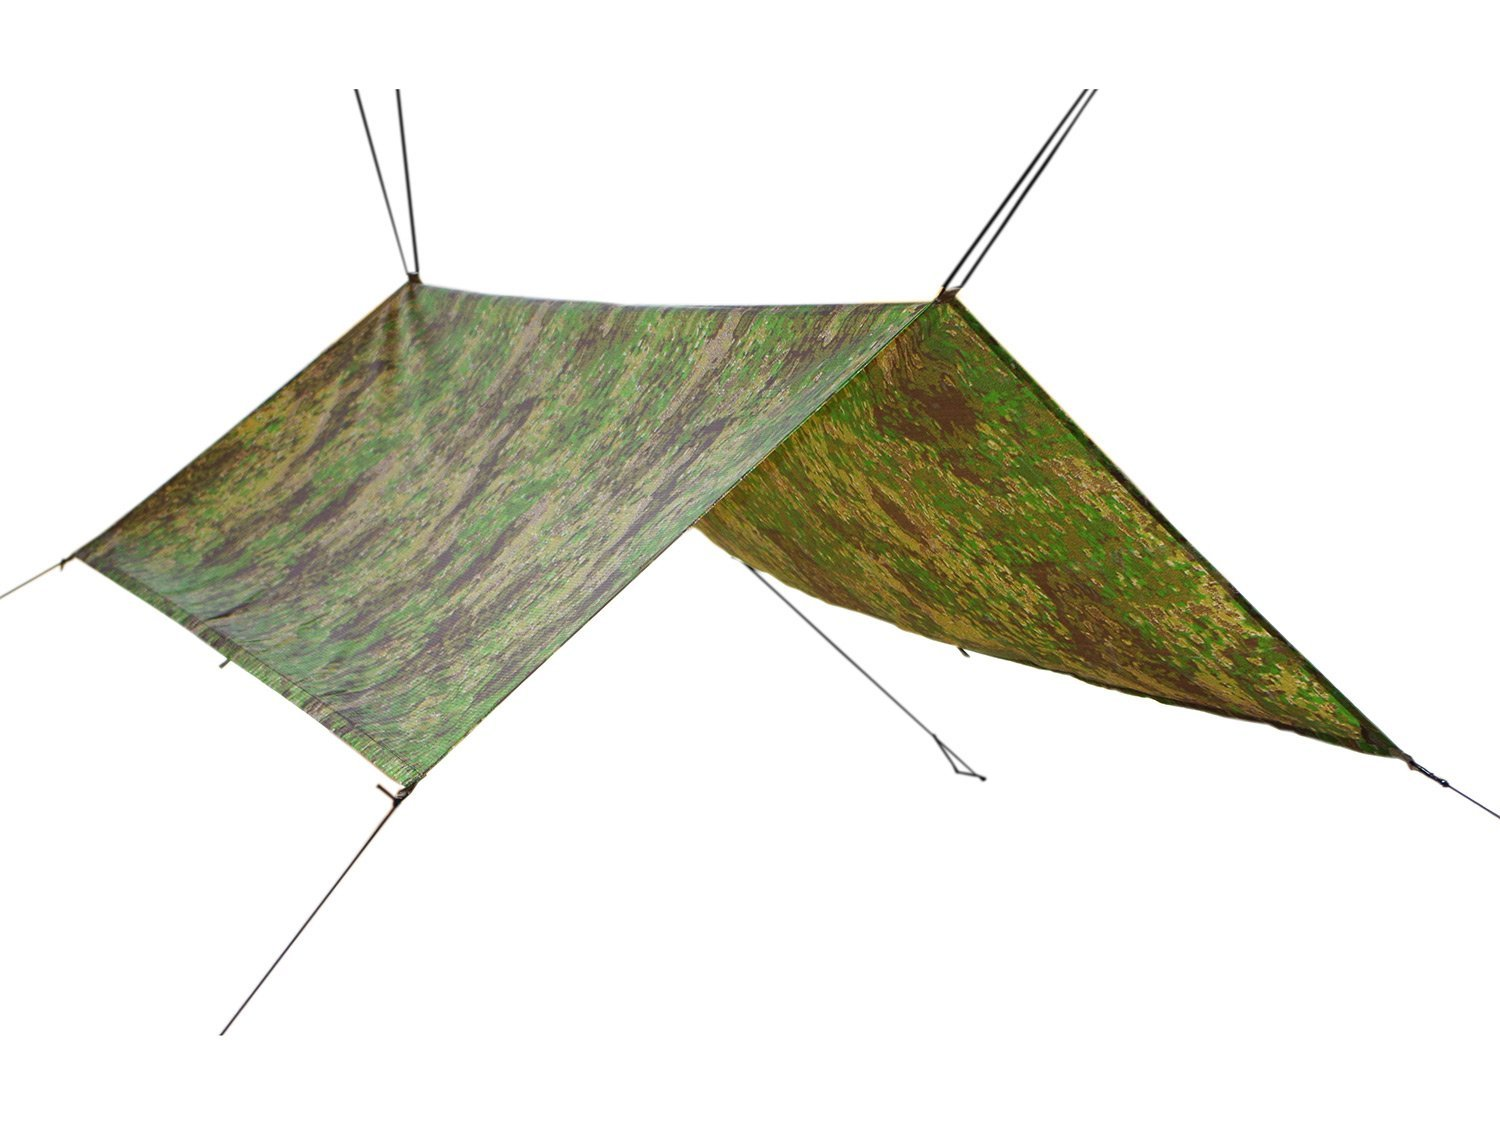 BE-X FronTier One LRRP Tarp 150 x 250 cm, PenCott Grünzone (made in Germany)